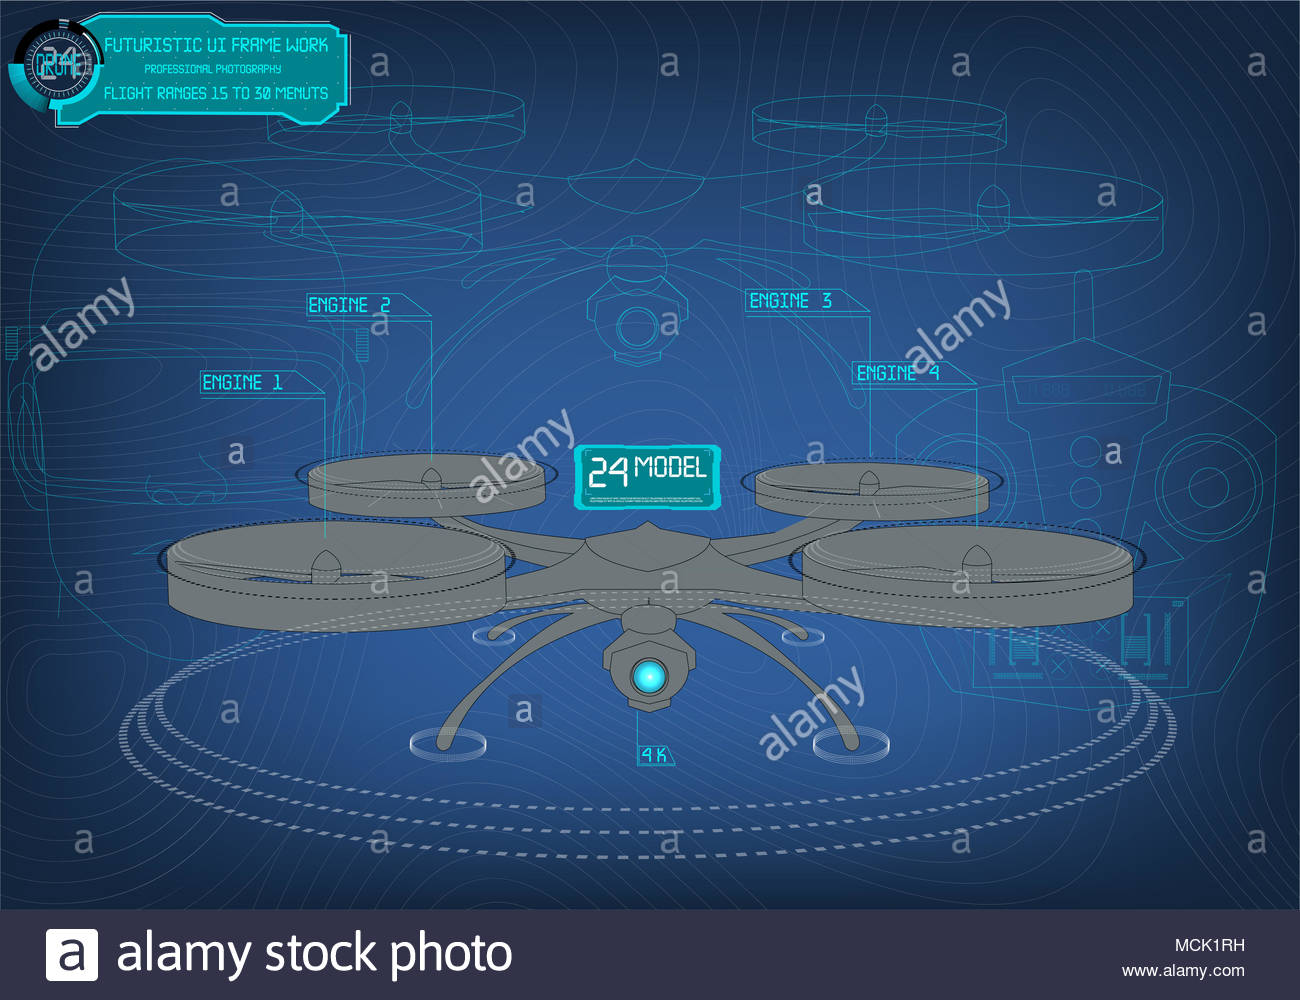 Futuristic background with quadrocopter and interface HUD. Vector illustration drone. - Stock Image